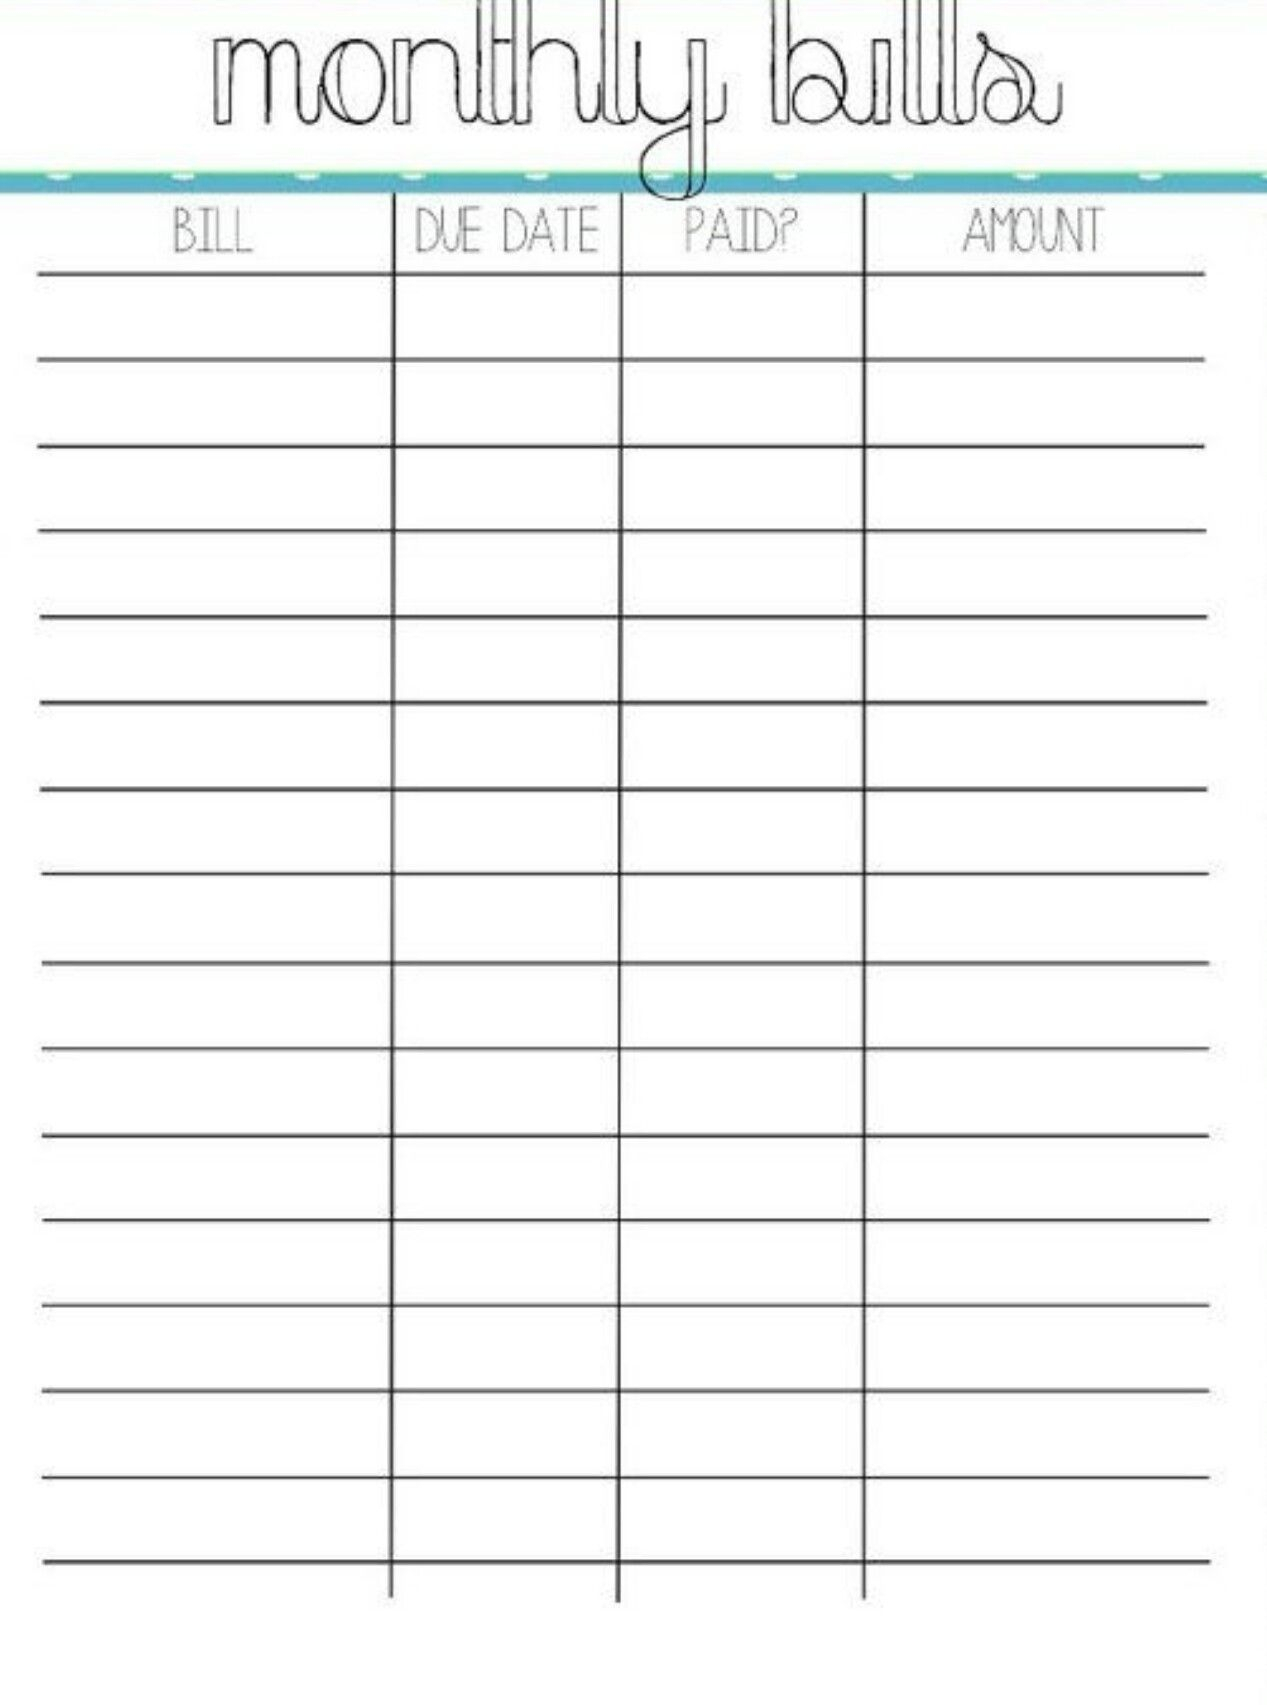 Pin By Crystal On Bills | Organizing Monthly Bills, Bills regarding Free Printable Bill Chart